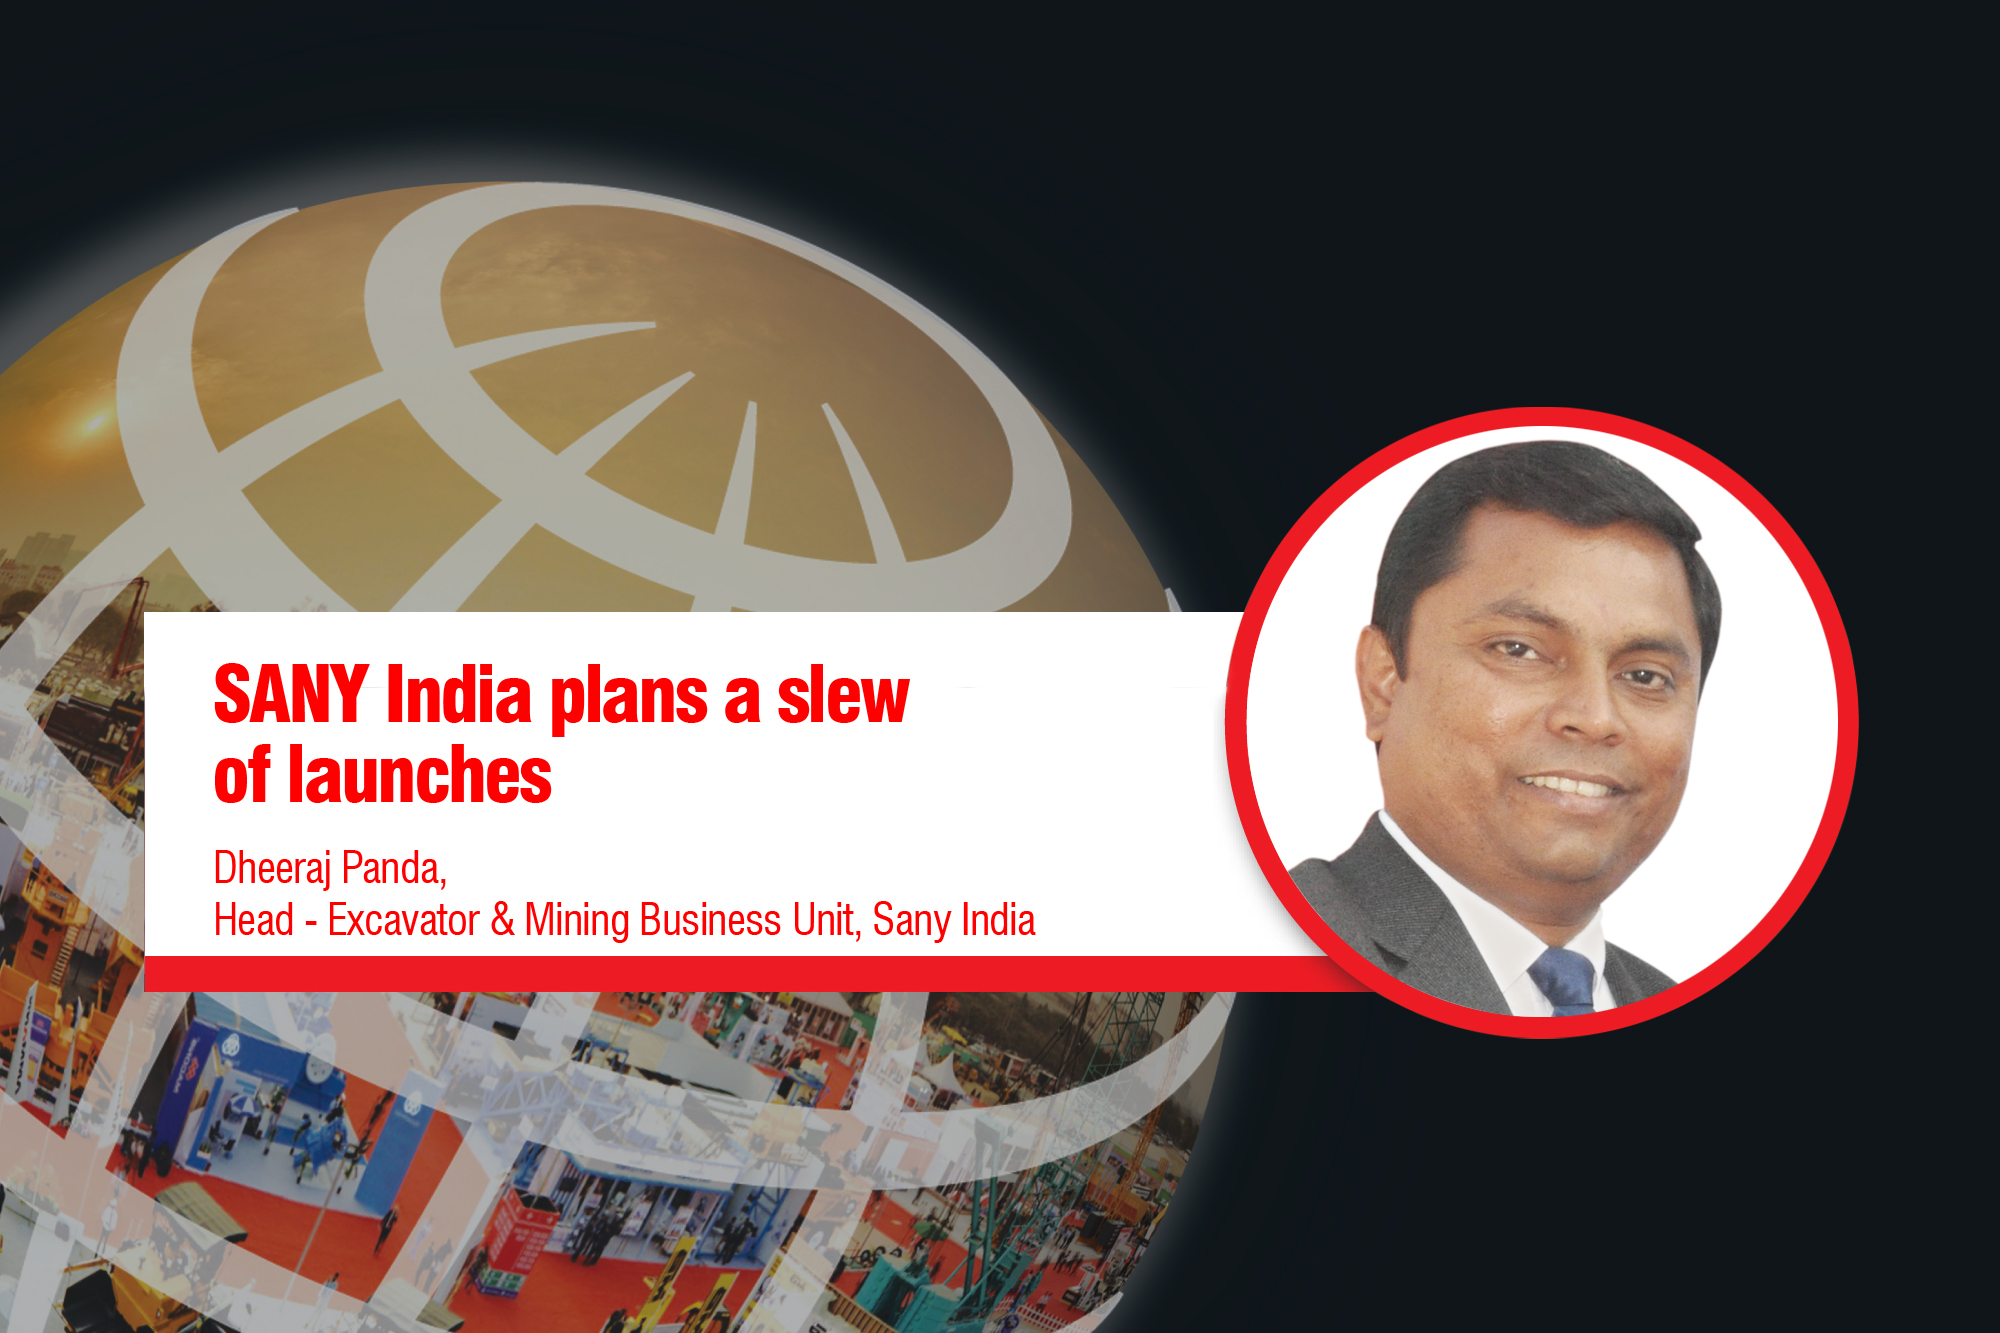 SANY India plans a slew of launches